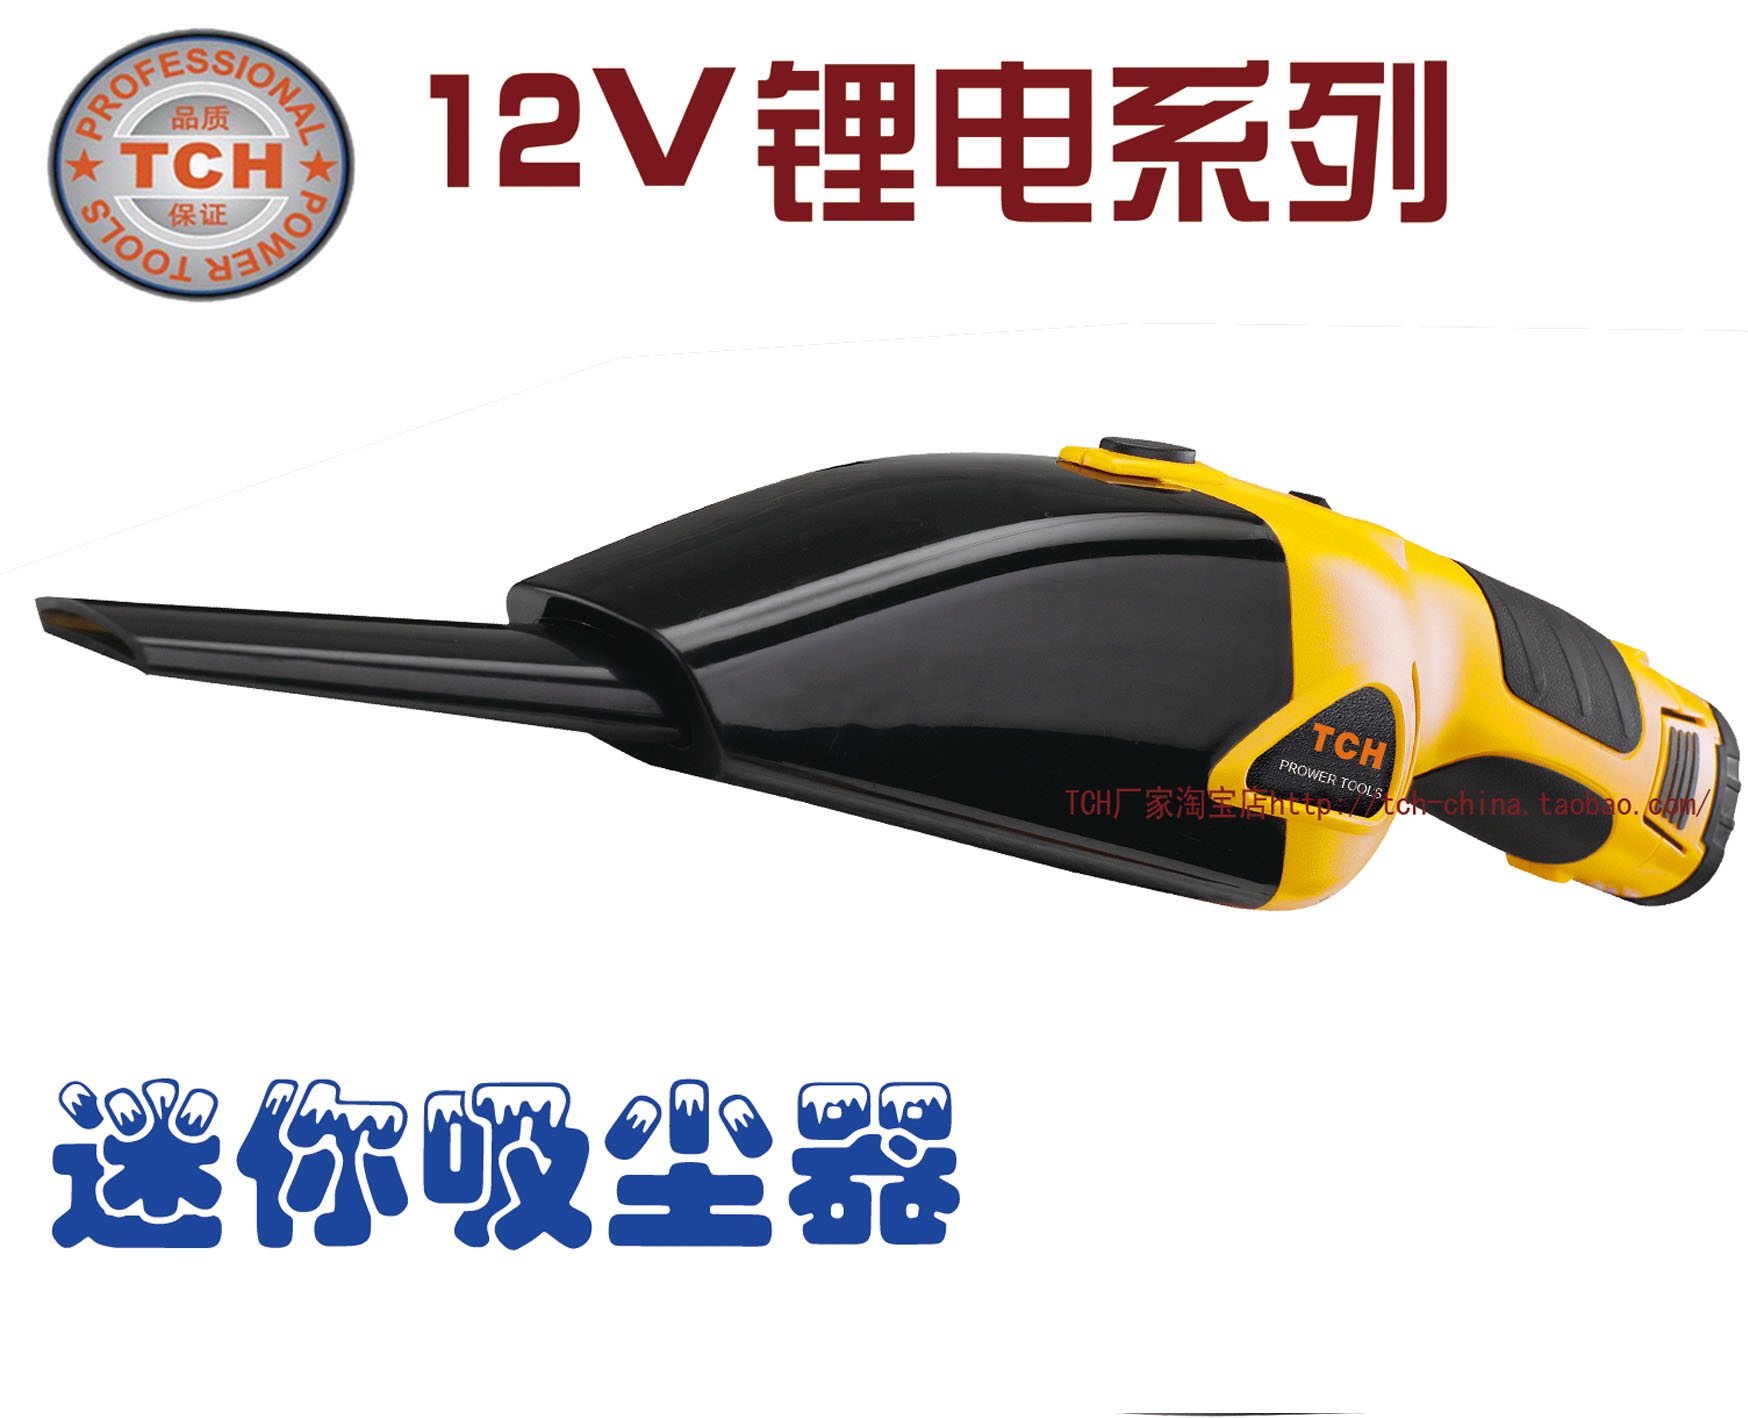 12v lithium battery vacuum cleaner mini vacuum cleaner handheld cordless charge type sofa car vacuum cleaner